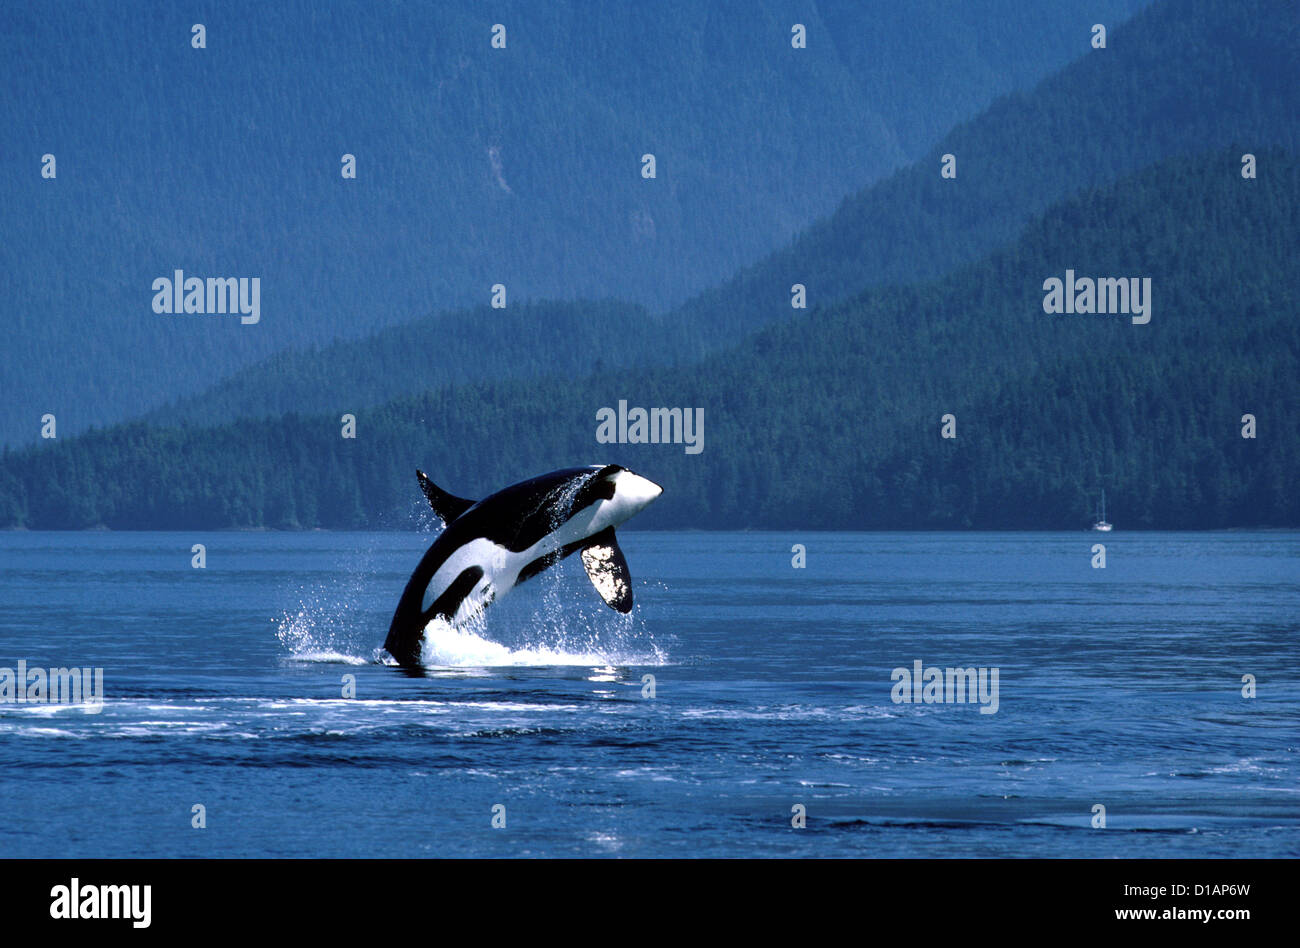 Killer whale; Orca.Orcinus orca.Male, breaching.Photographed in Johnstone Strait, British Columbia, Canada - Stock Image